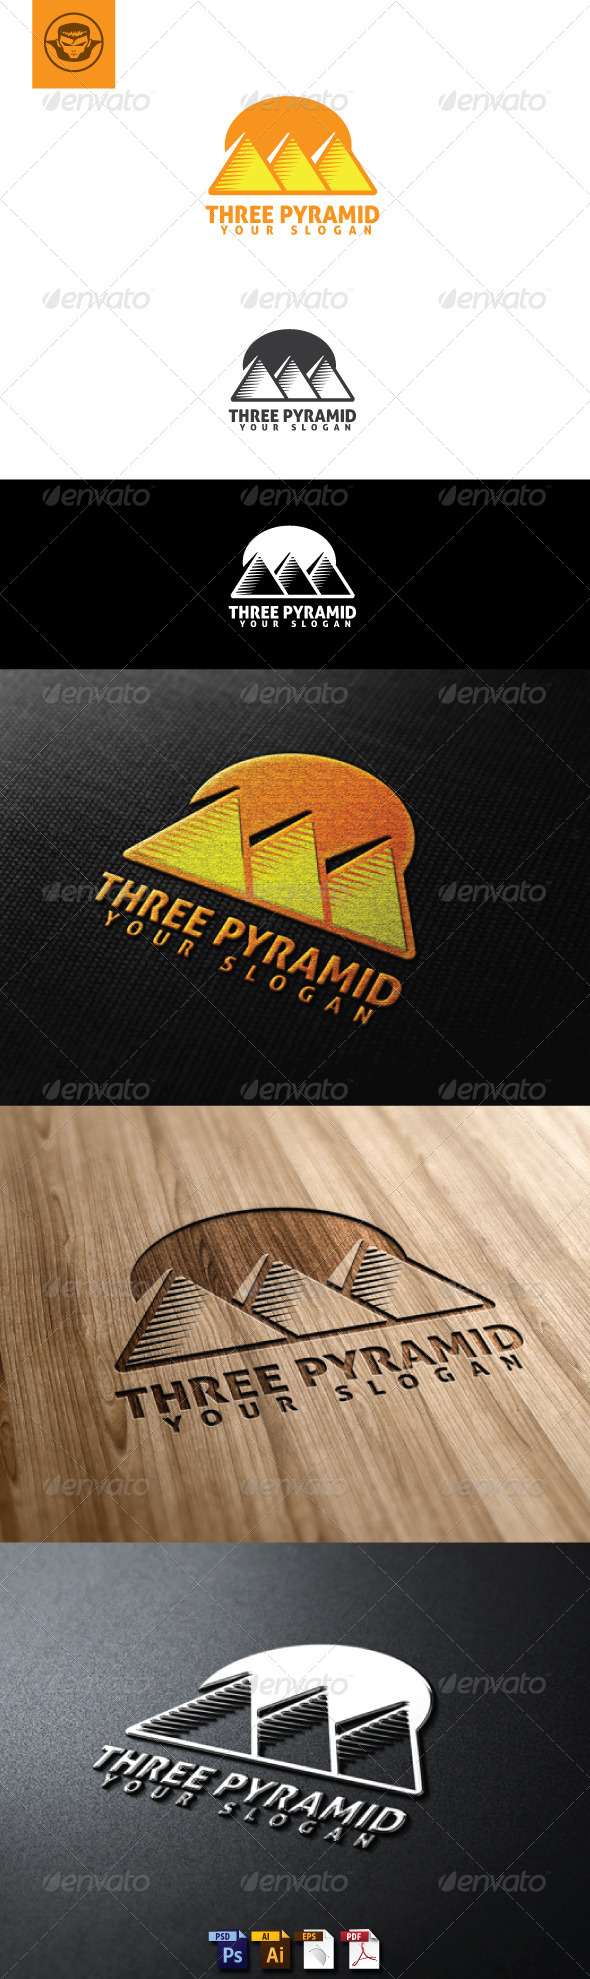 GraphicRiver Three Pyramid Logo Template 5102487